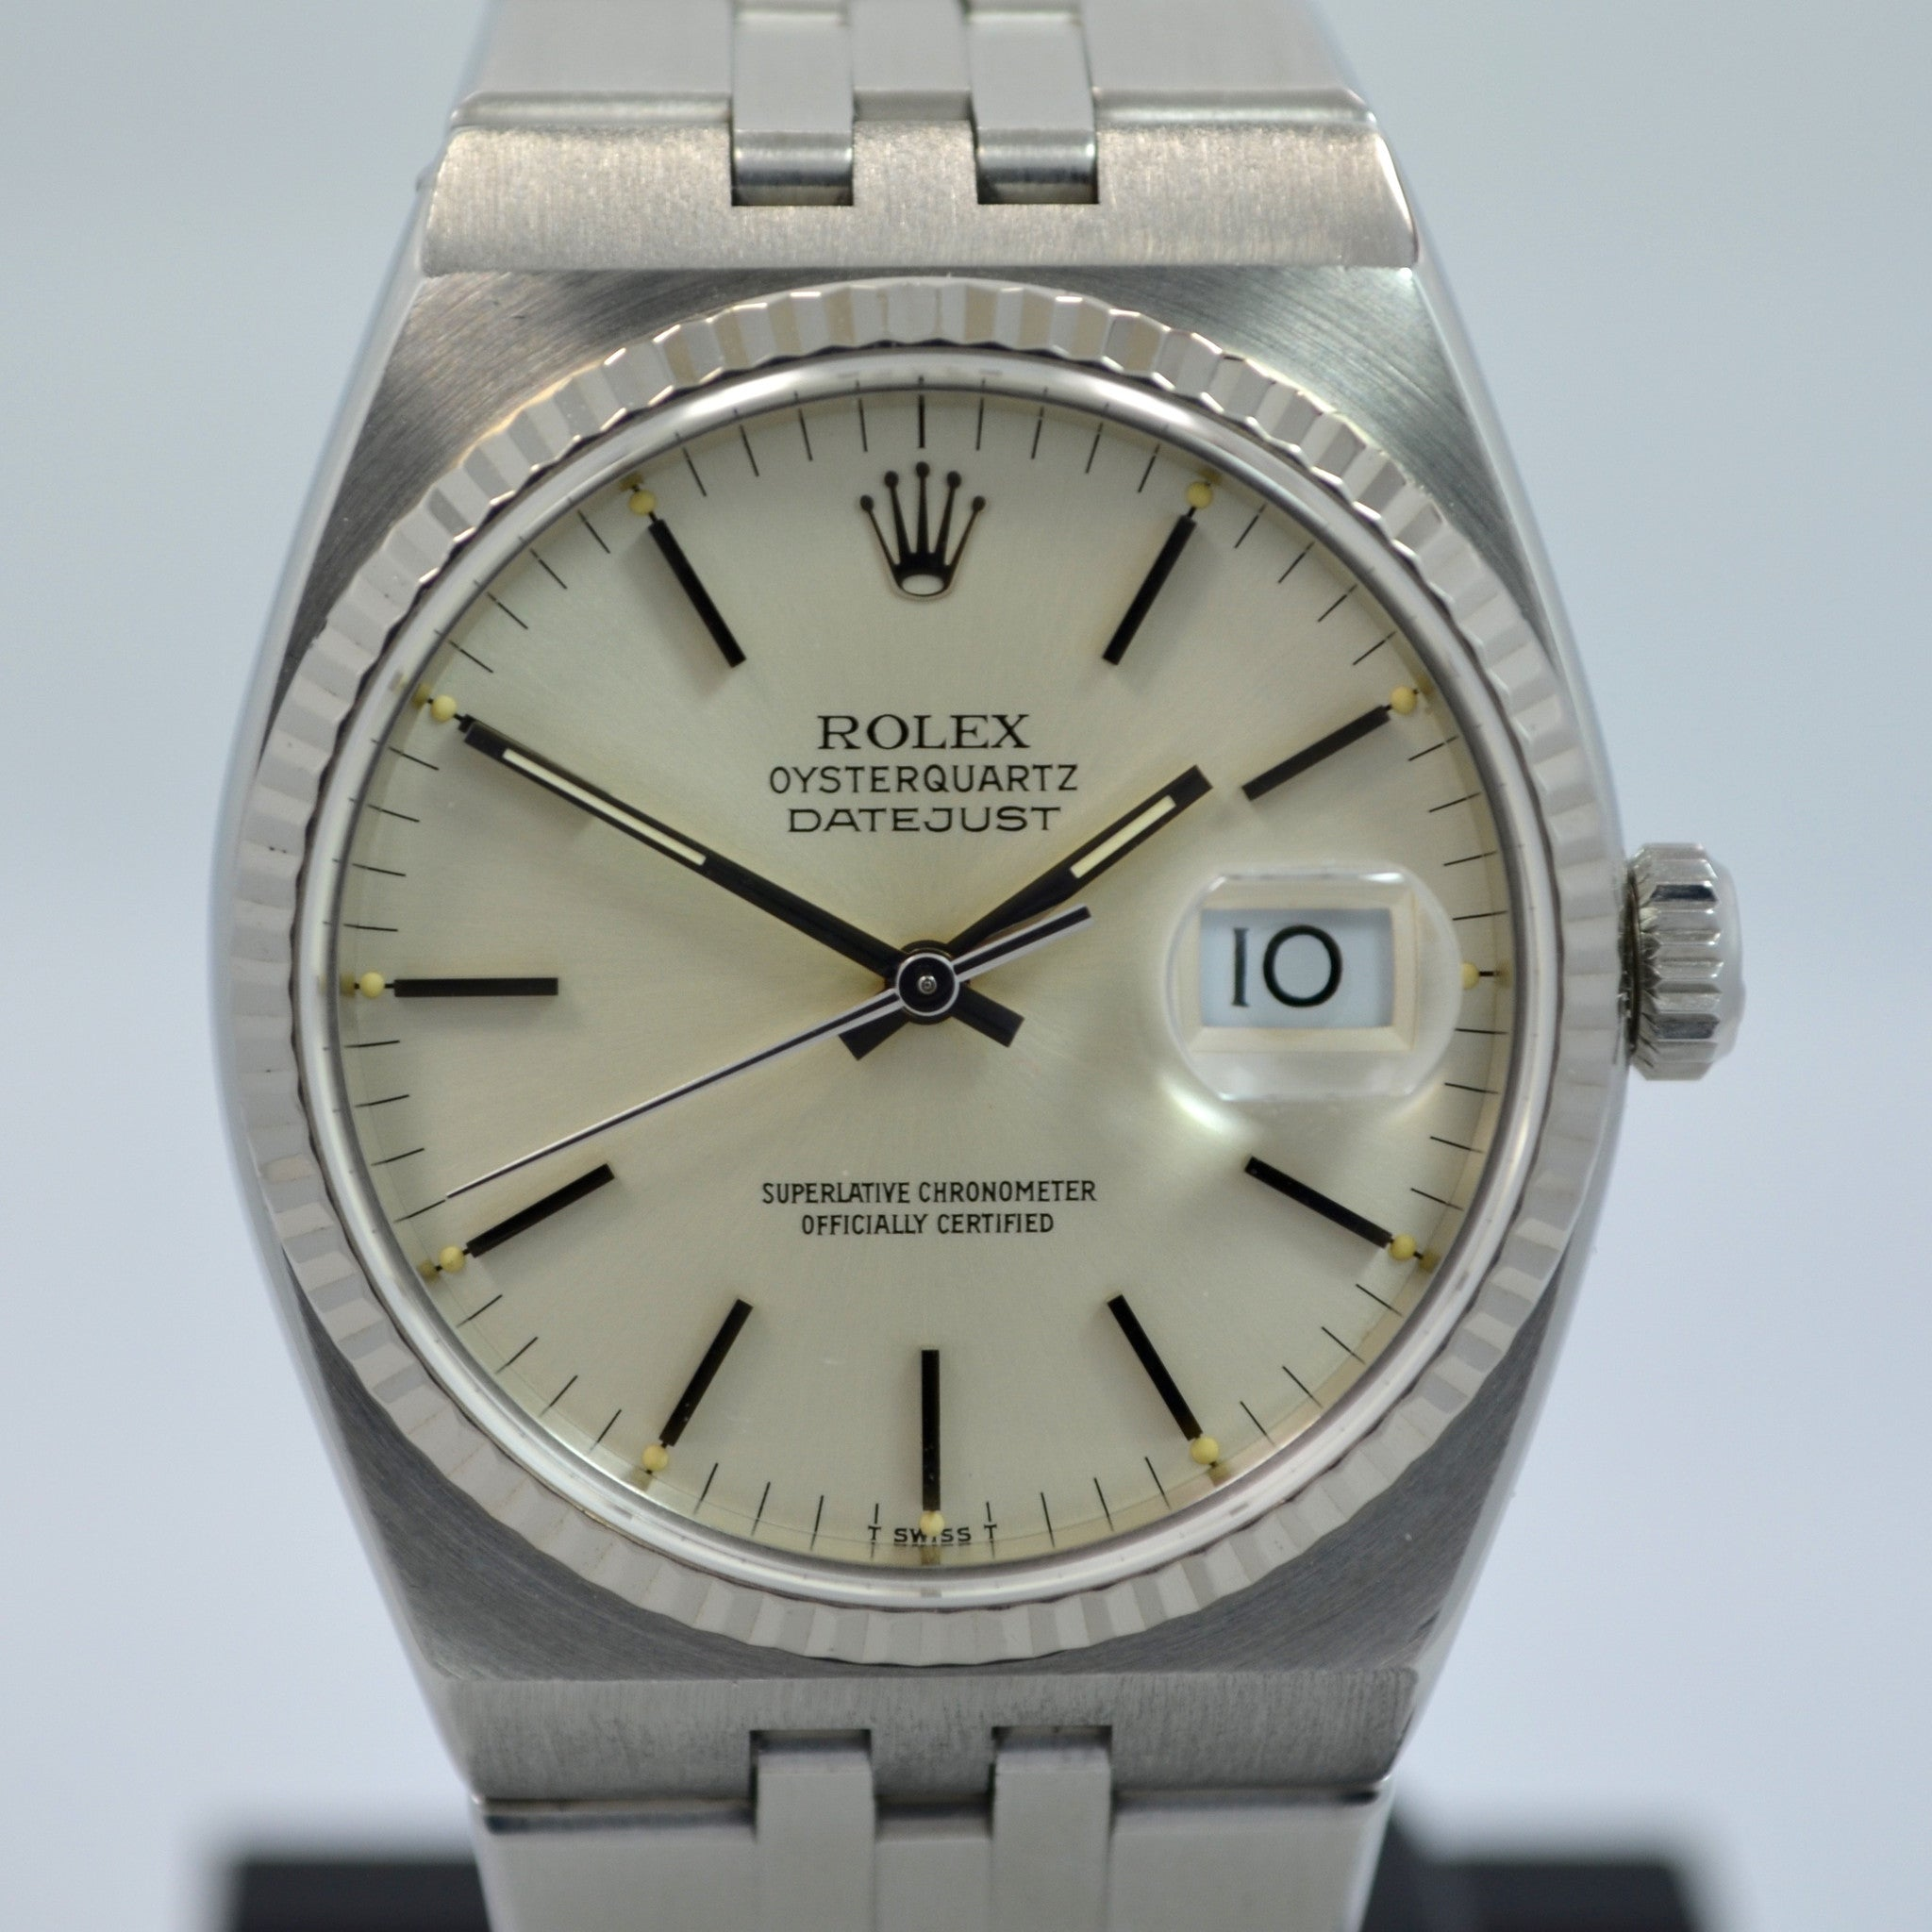 "Vintage Rolex Oysterquartz 17014 Datejust Steel 18K Wristwatch 1985 Box Papers ""New Old Stock!"" - Hashtag Watch Company"